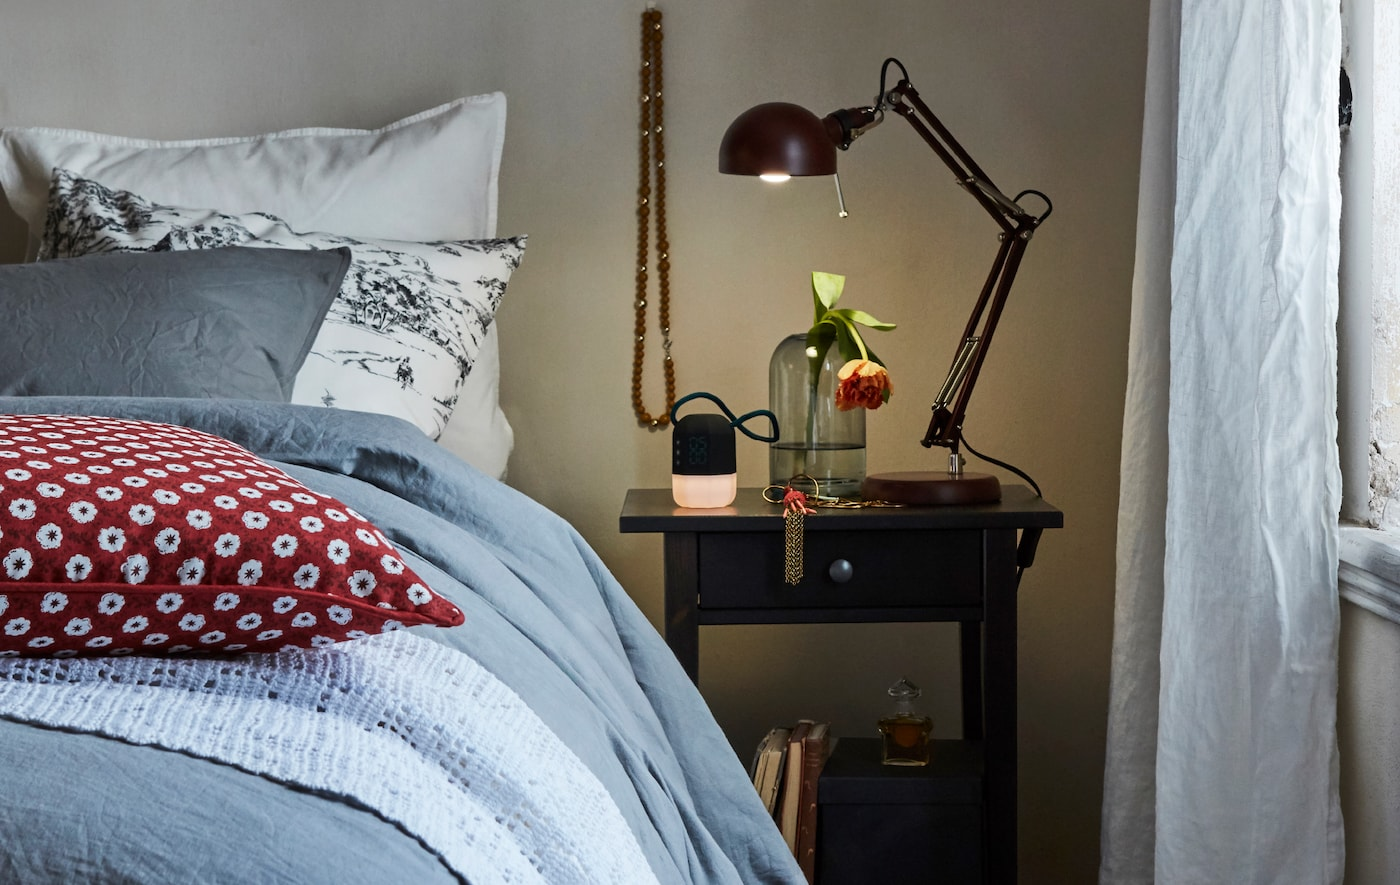 A work lamp on a table next to a bed shines light on a glass vase and alarm clock in a cosy bedroom.